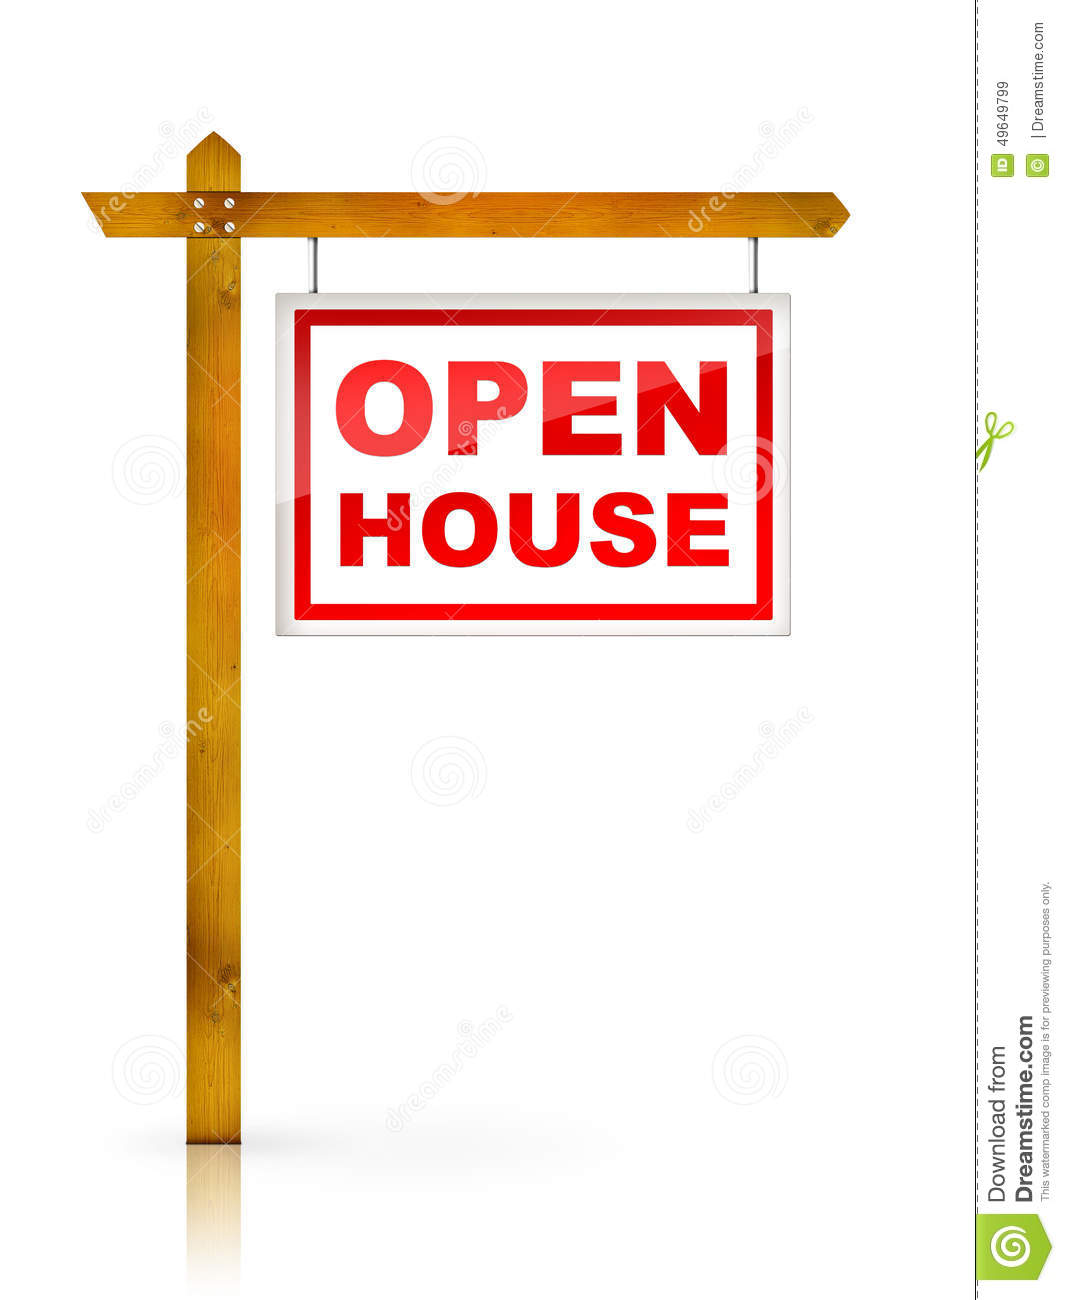 Royalty free stock images sign open house image 49649799 for Open home